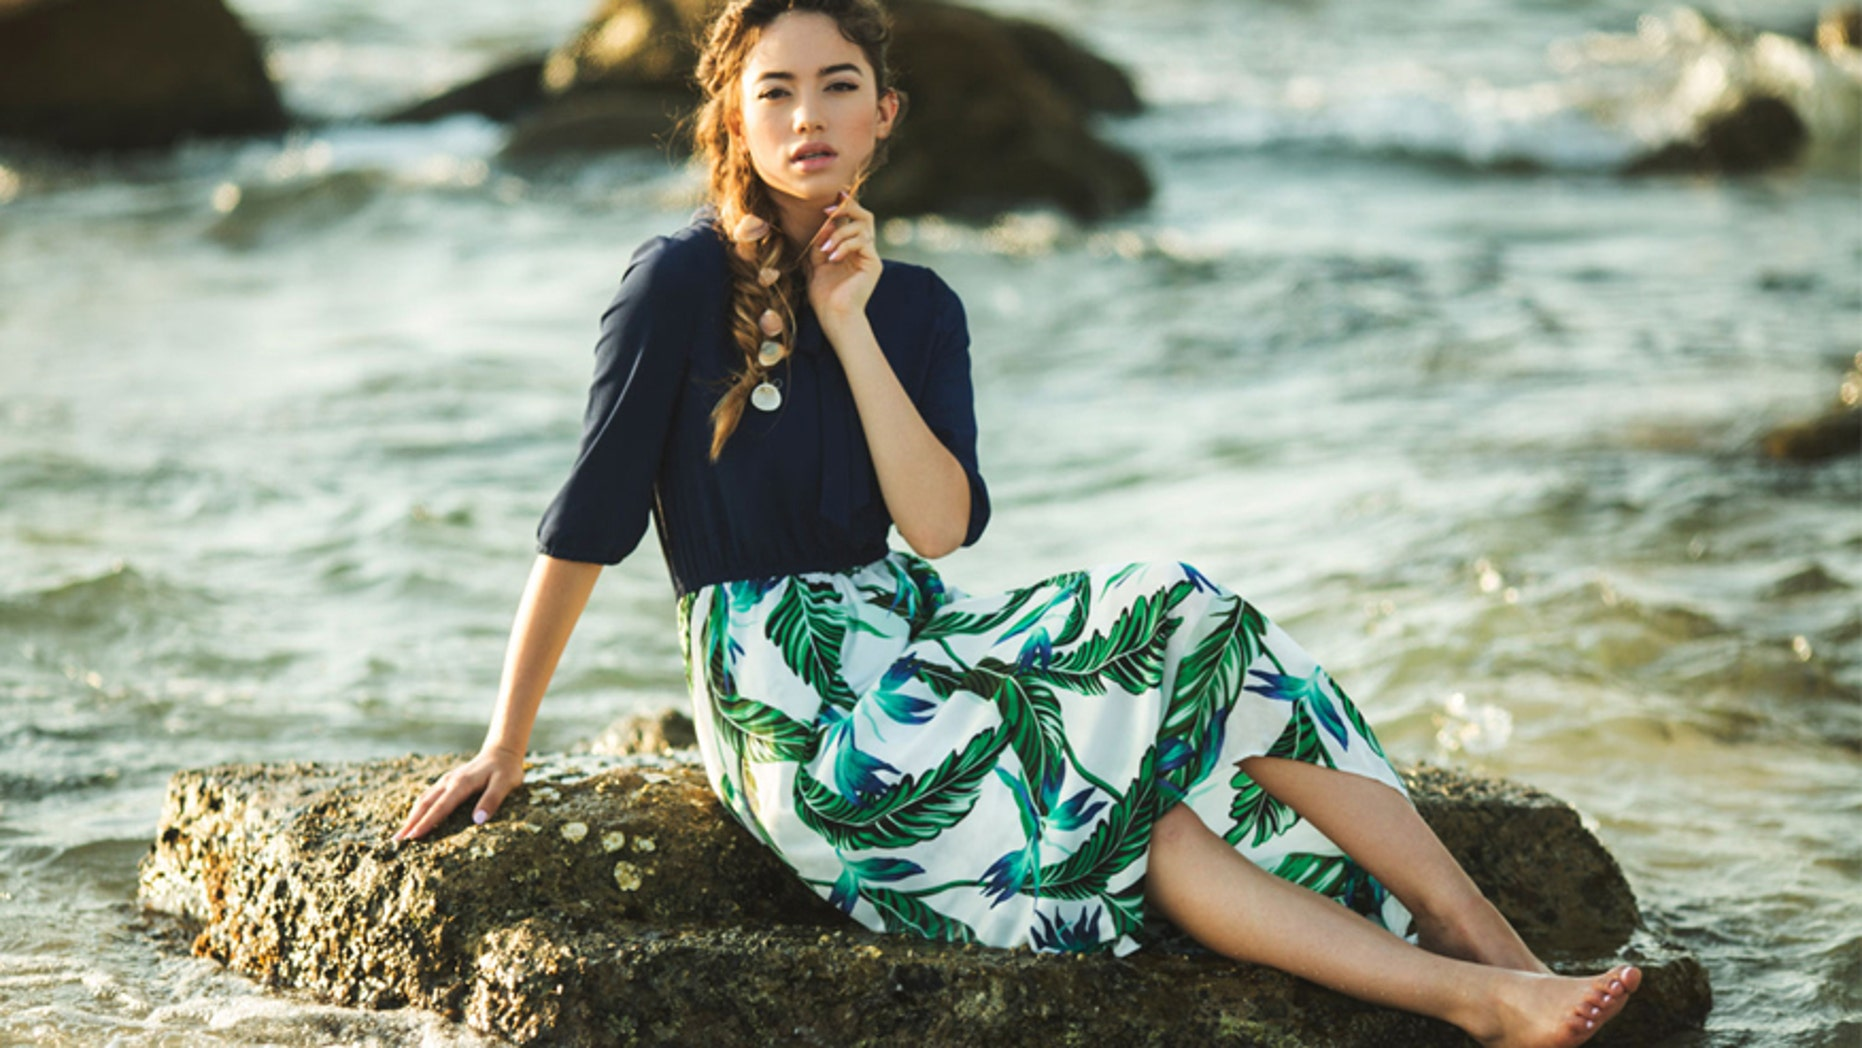 A model wears a dress available on the modest fashion marketplace ModLi.